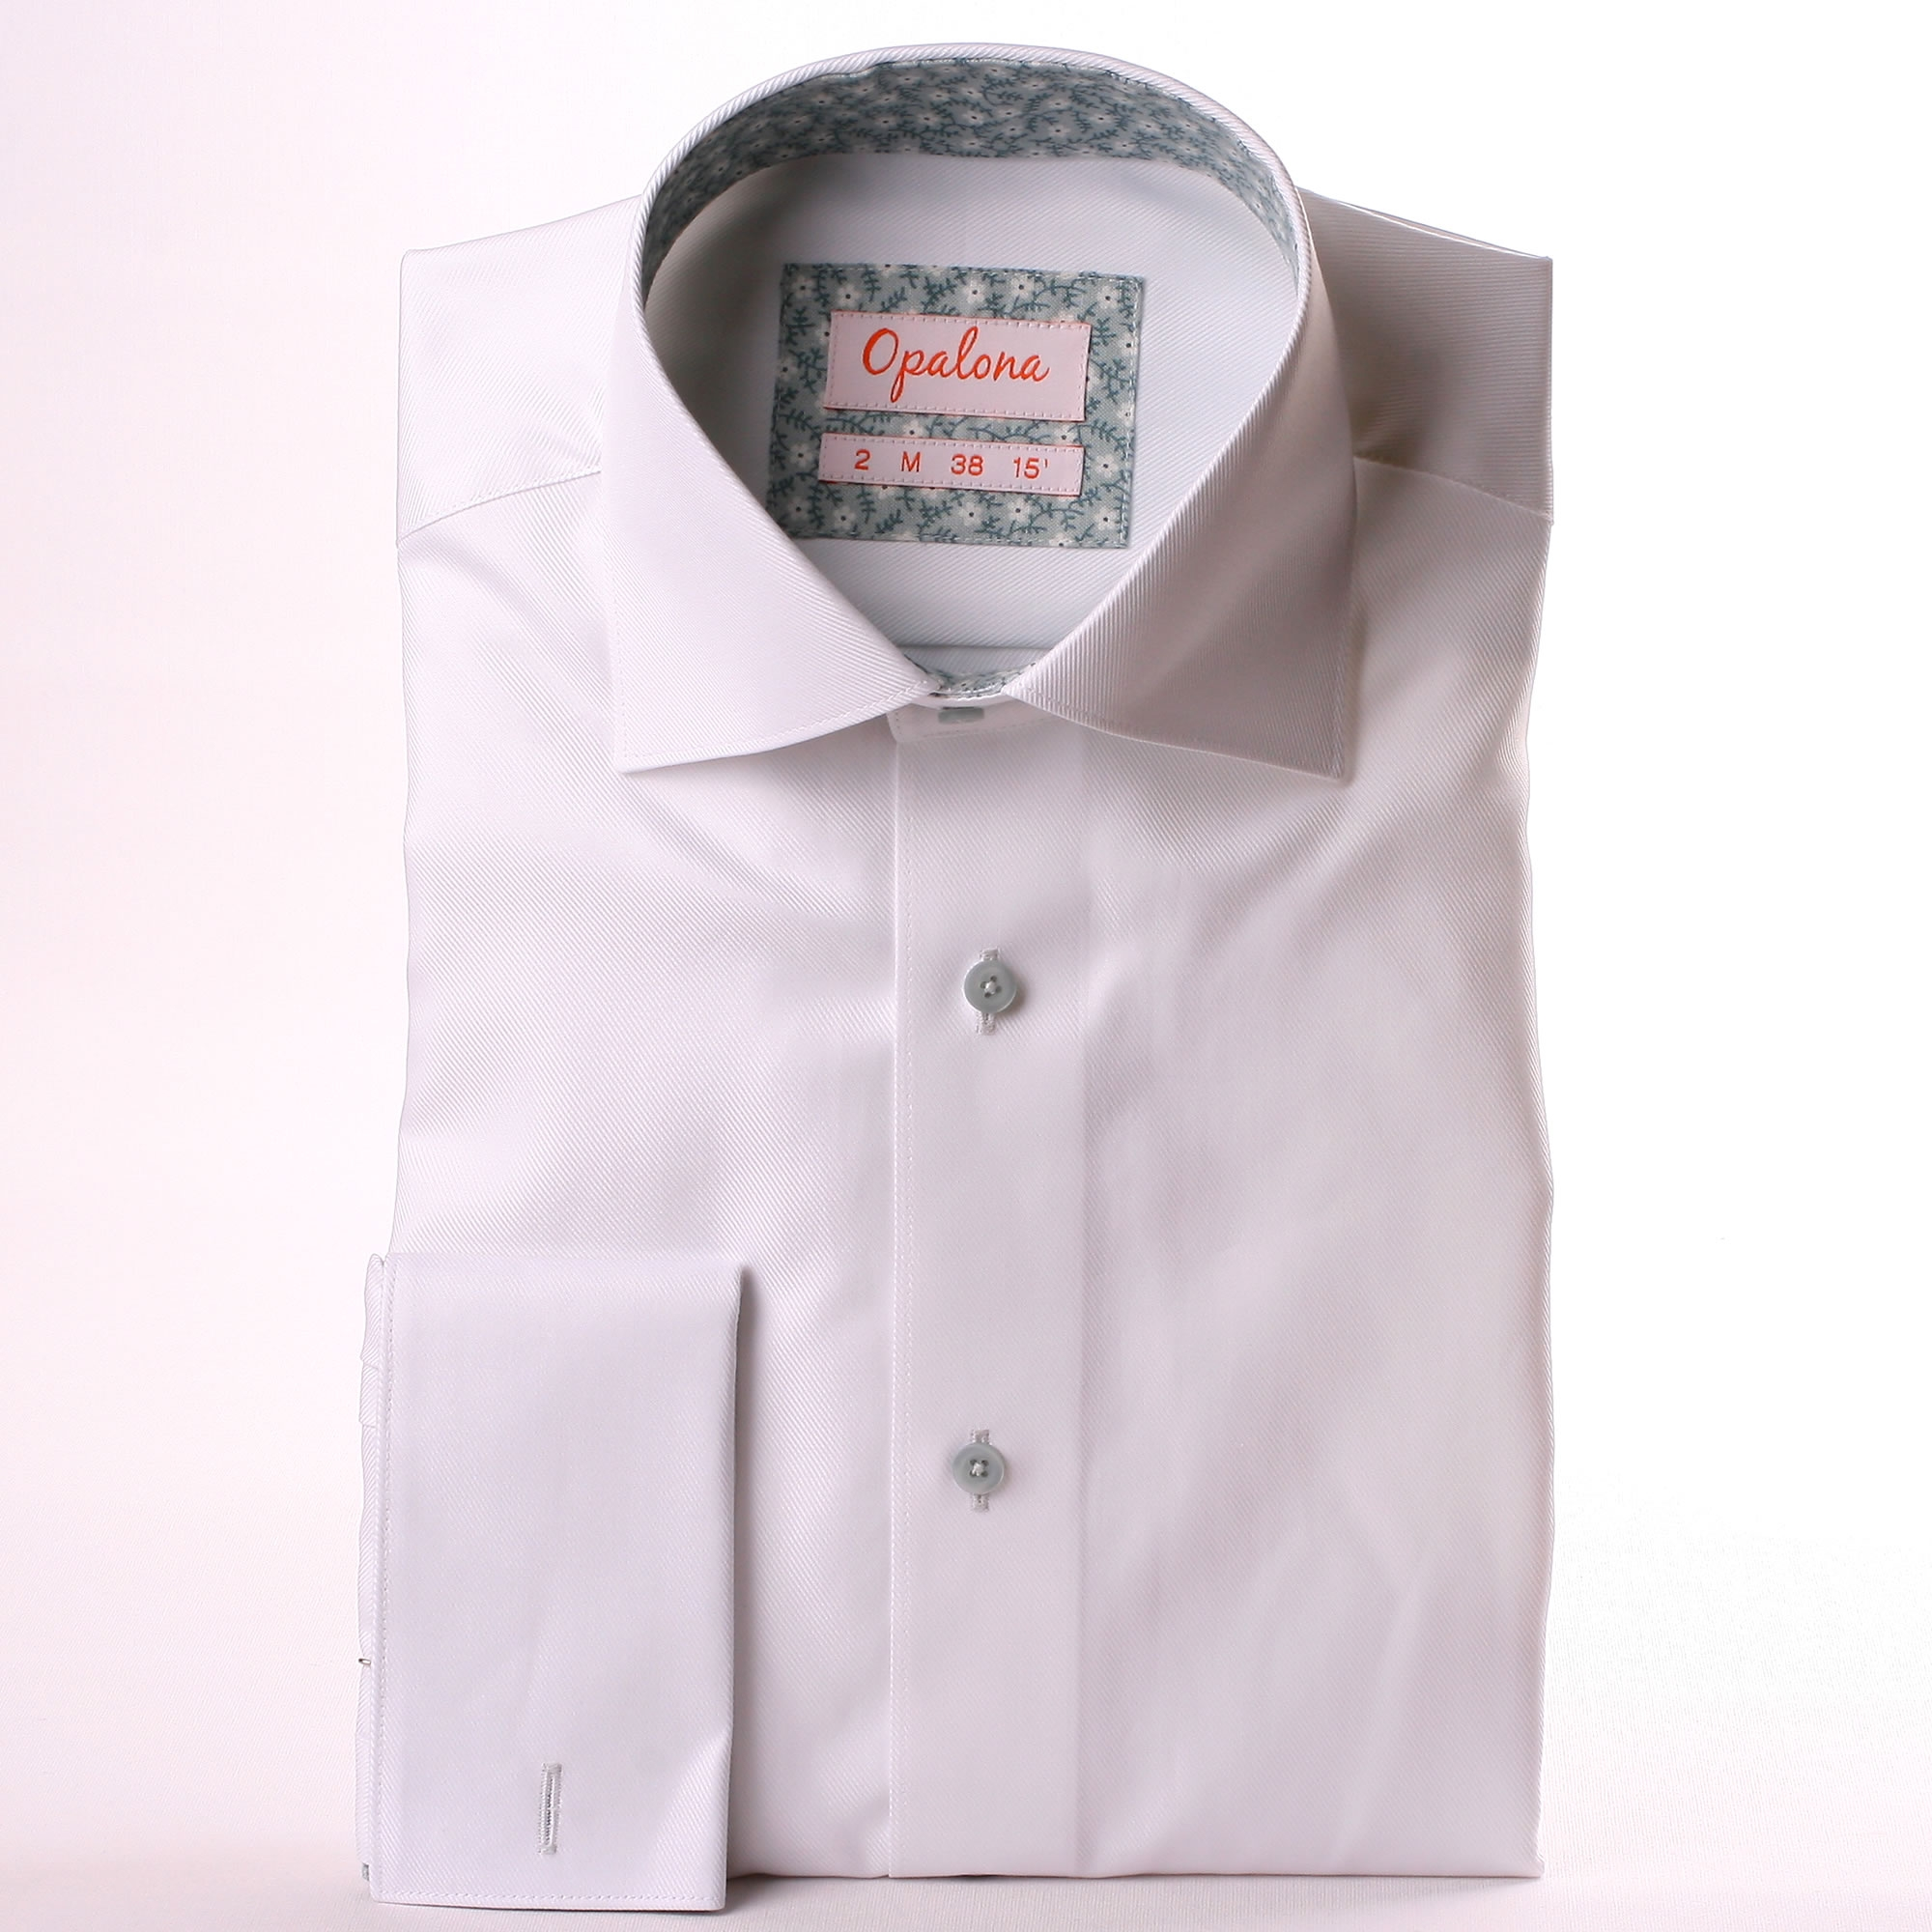 White French Cuff Shirt With Grey Floral Collar And Cuffs